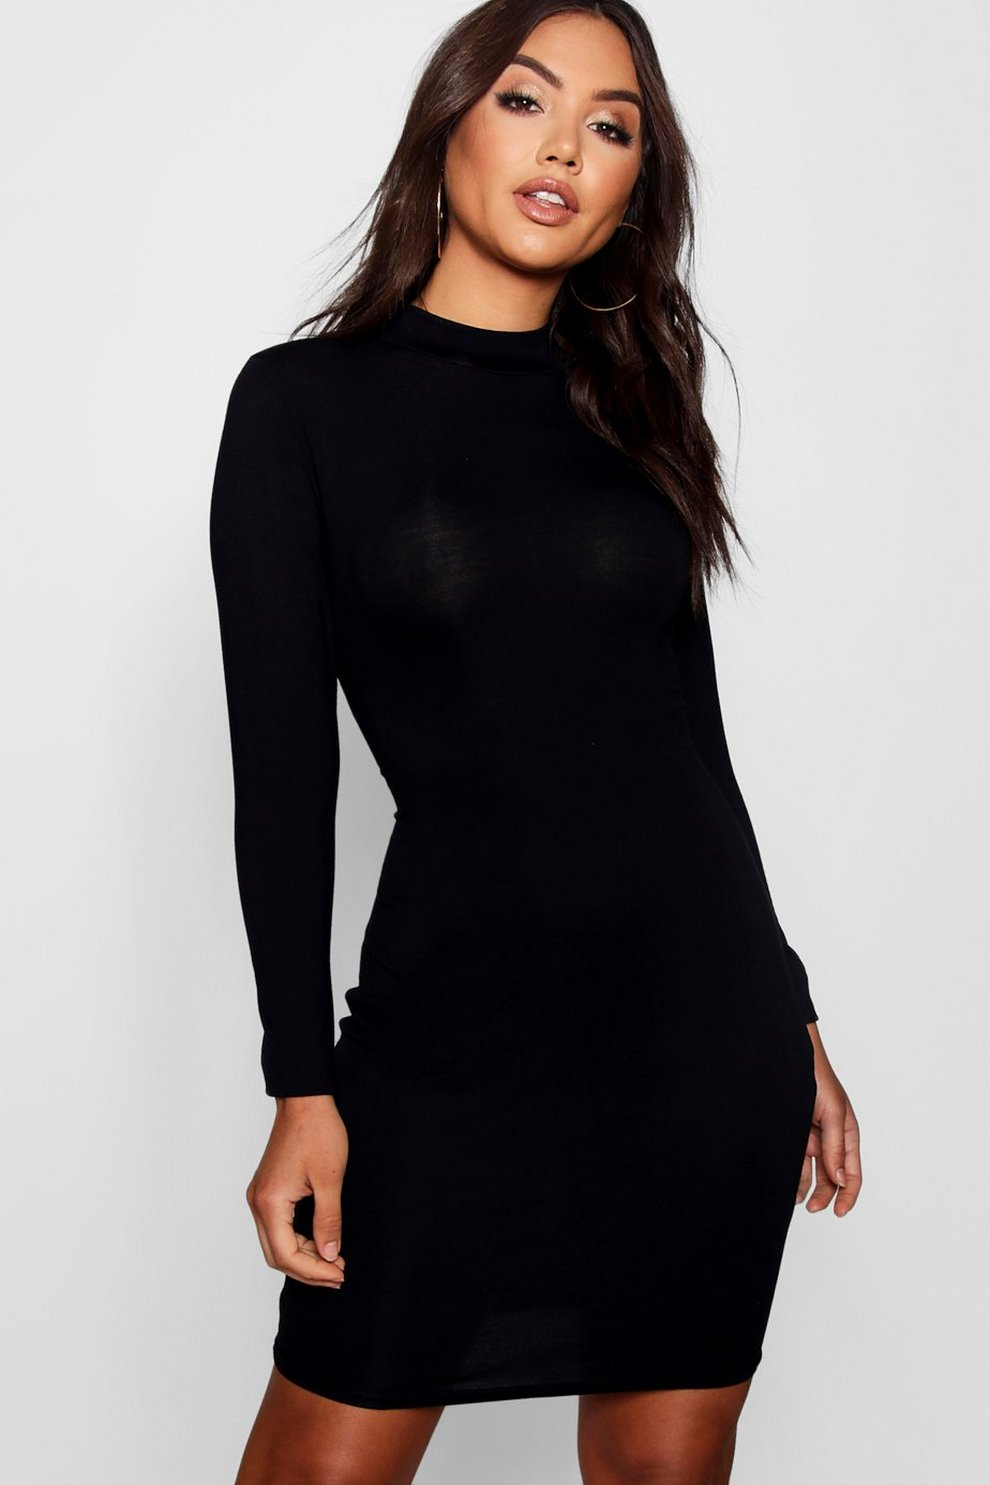 35a387122 Womens Black High Neck Bodycon Dress. Hover to zoom